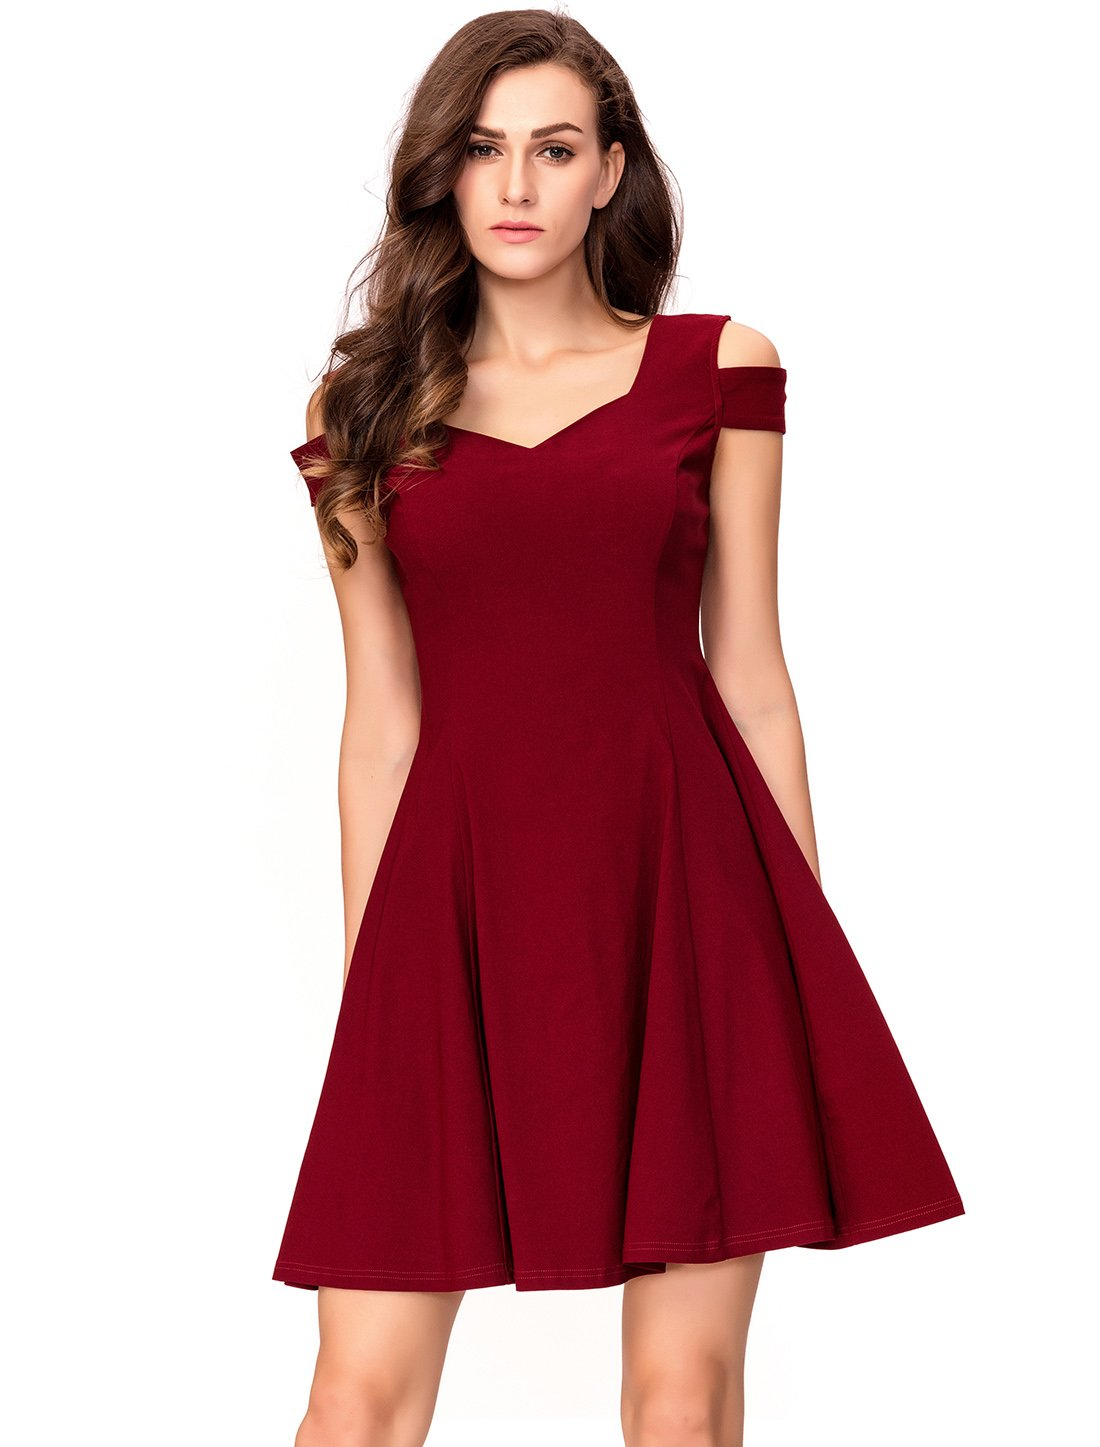 InsNova Women's Off Shoulder Little Cocktail Party A-line Skater Dress (X-Small, Burgundy)